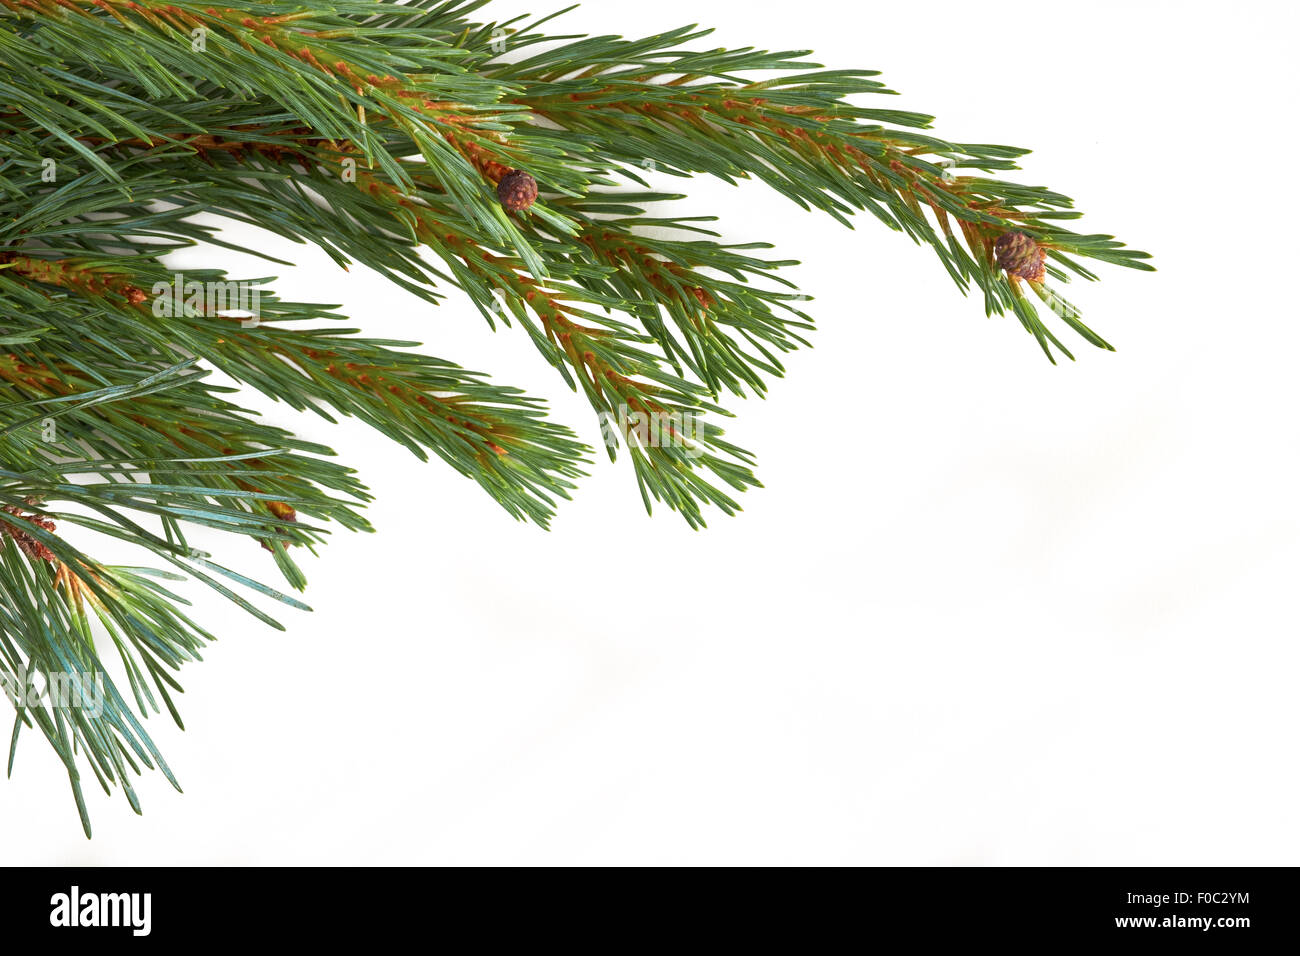 Isolated Christmas Tree branch isolated on a white background. - Stock Image